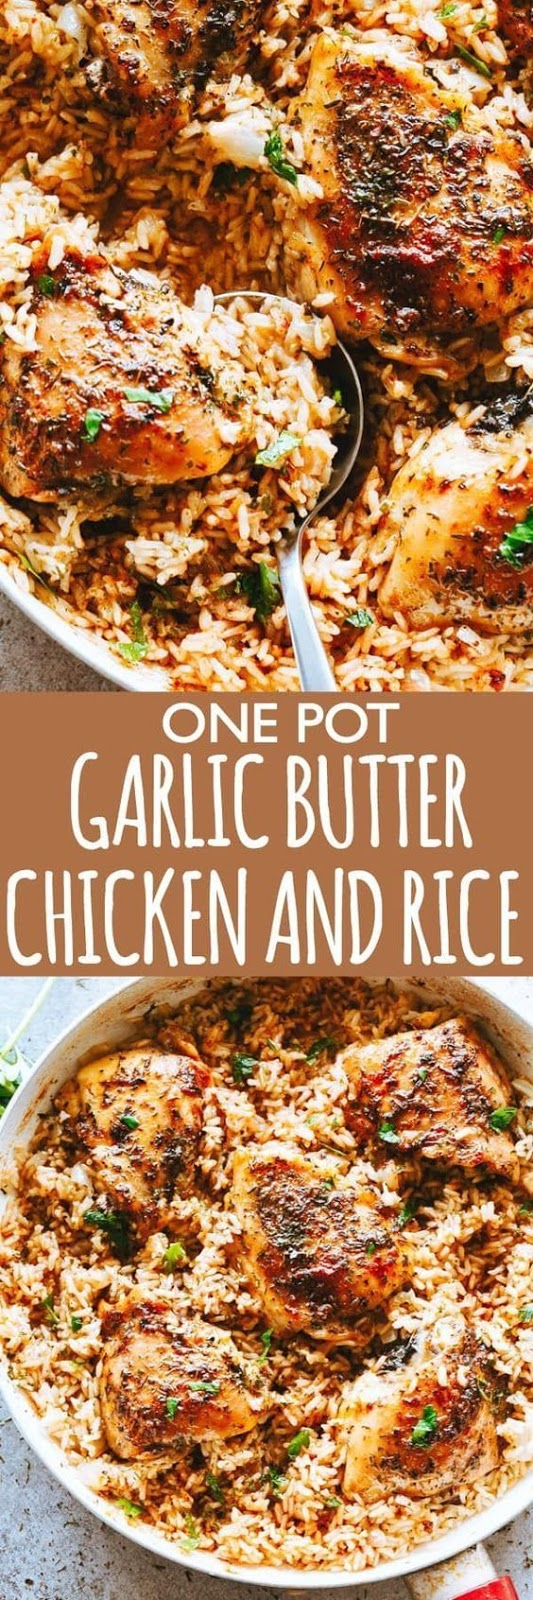 Garlic Butter Chicken and Rice Recipe #dinner #chicken #rice